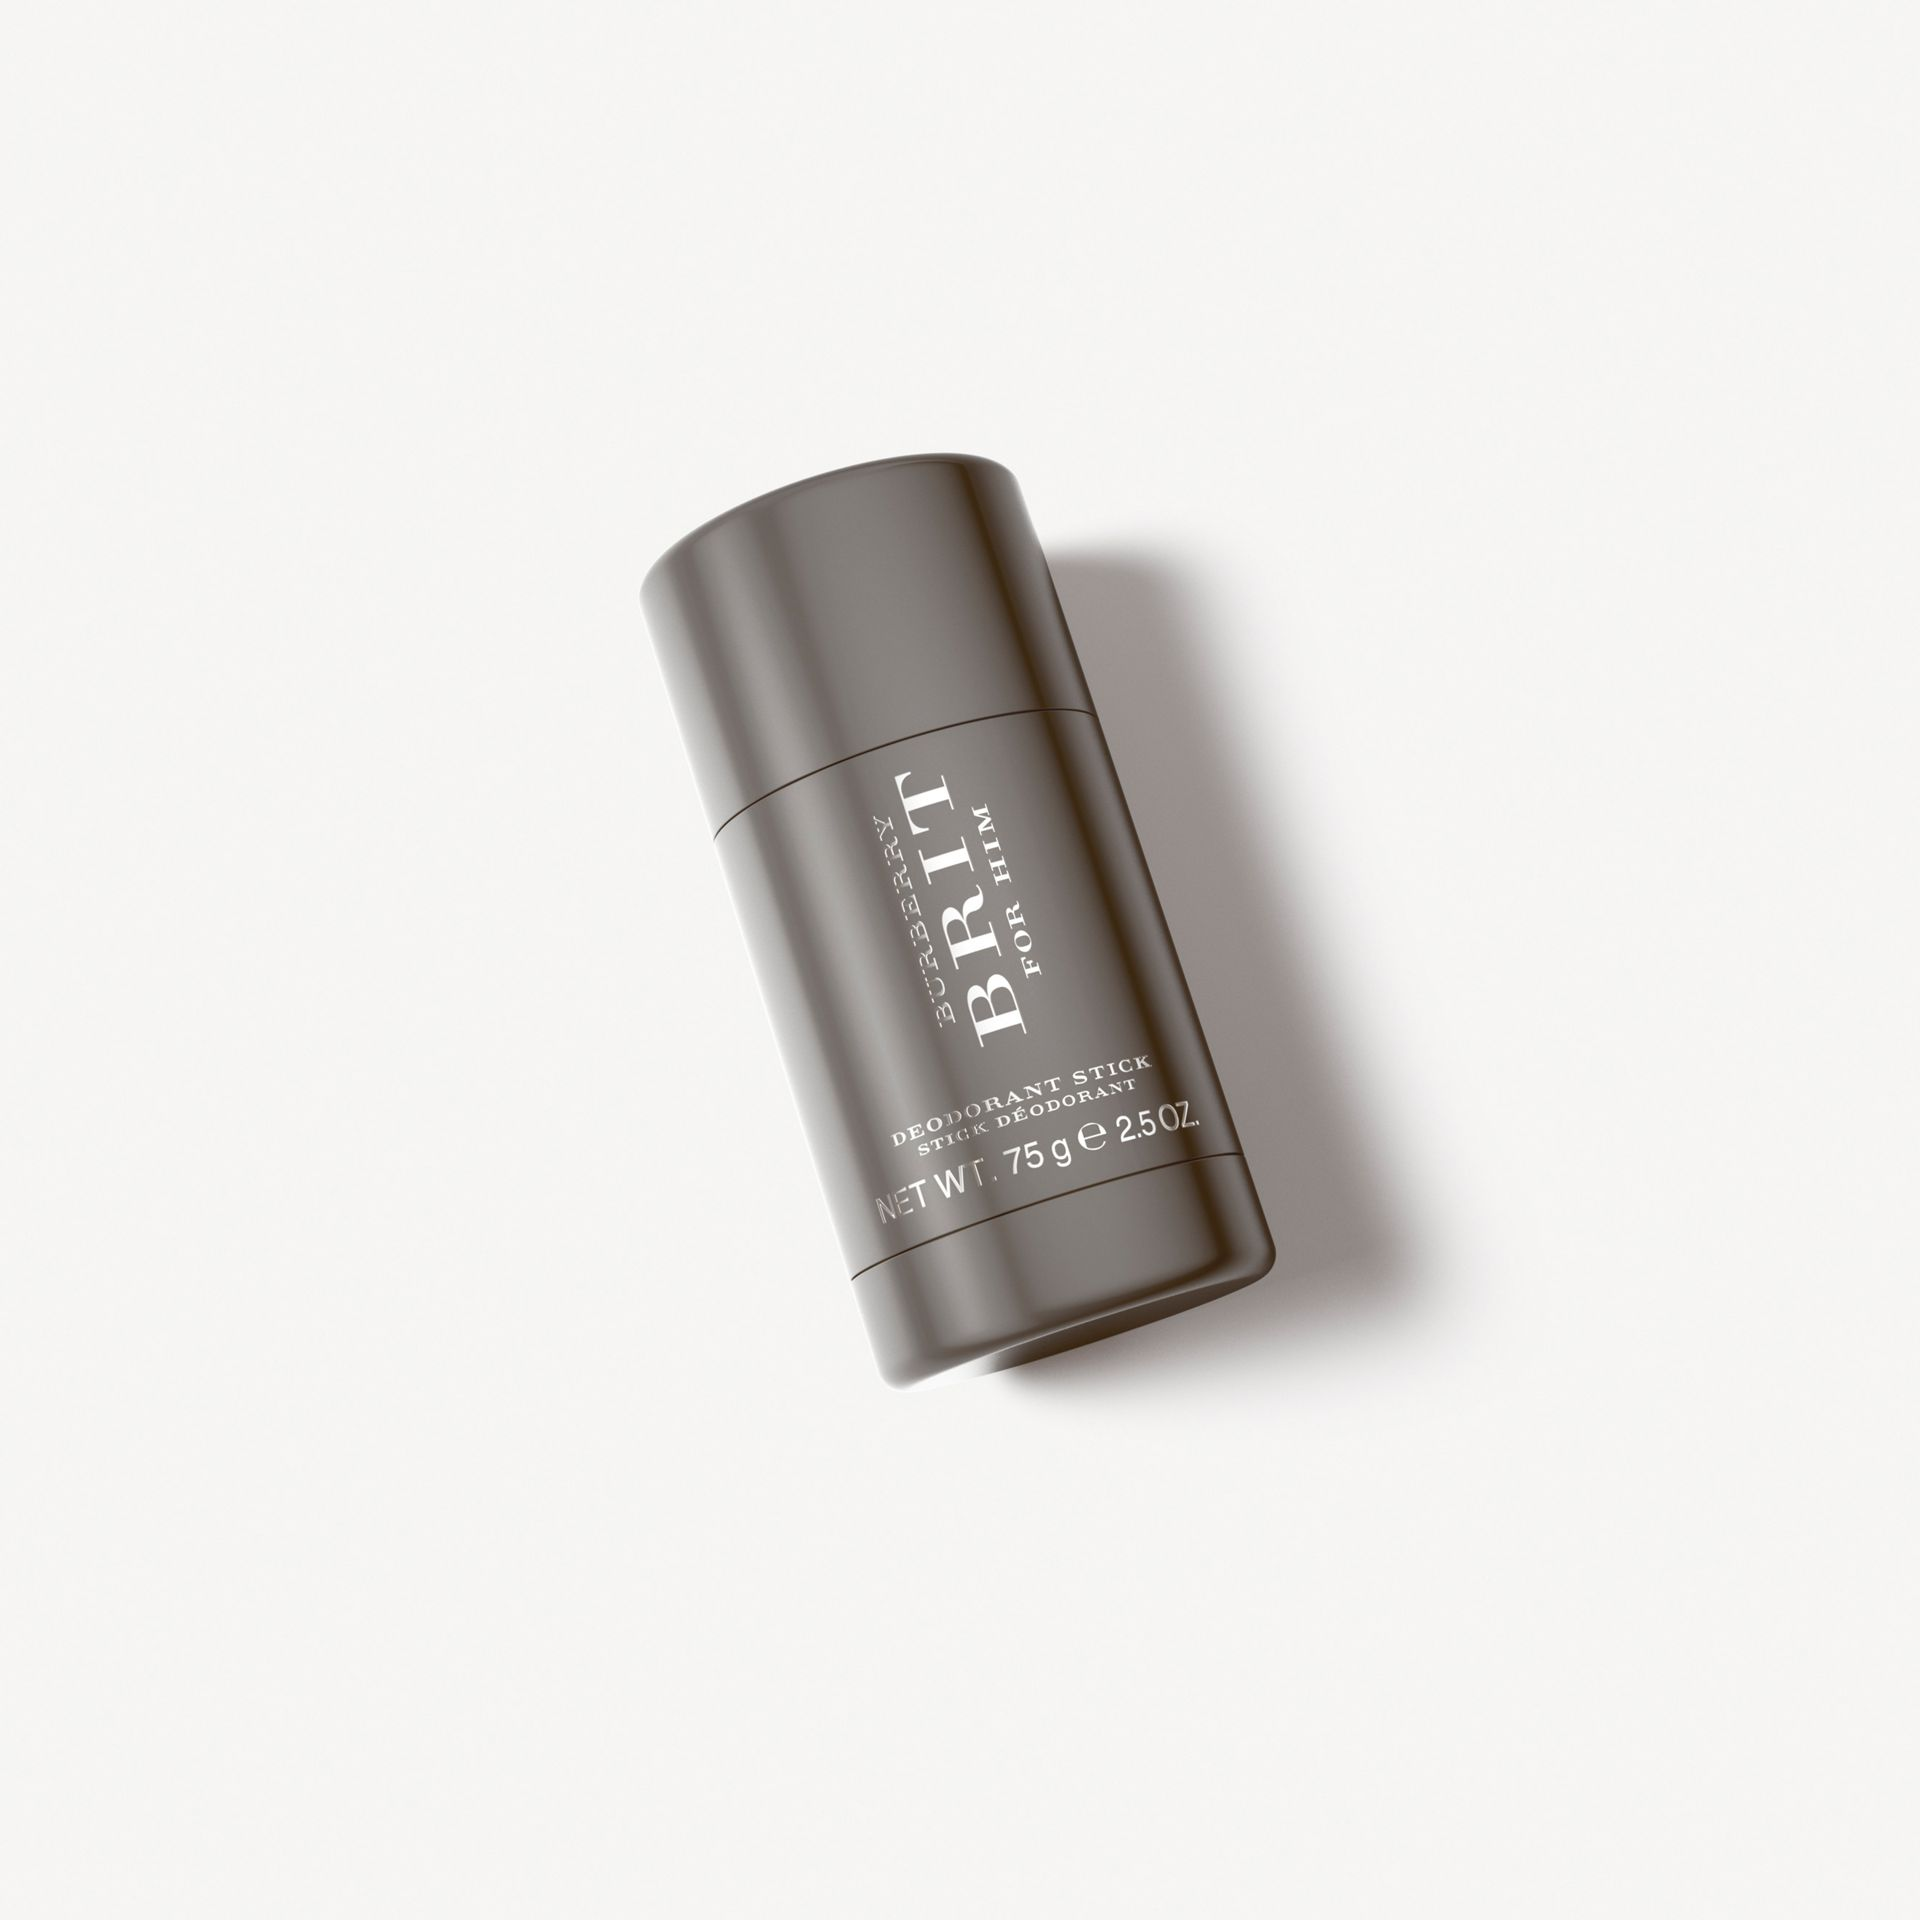 Burberry Brit For Him Deodorant-Stick 75 g - Galerie-Bild 1